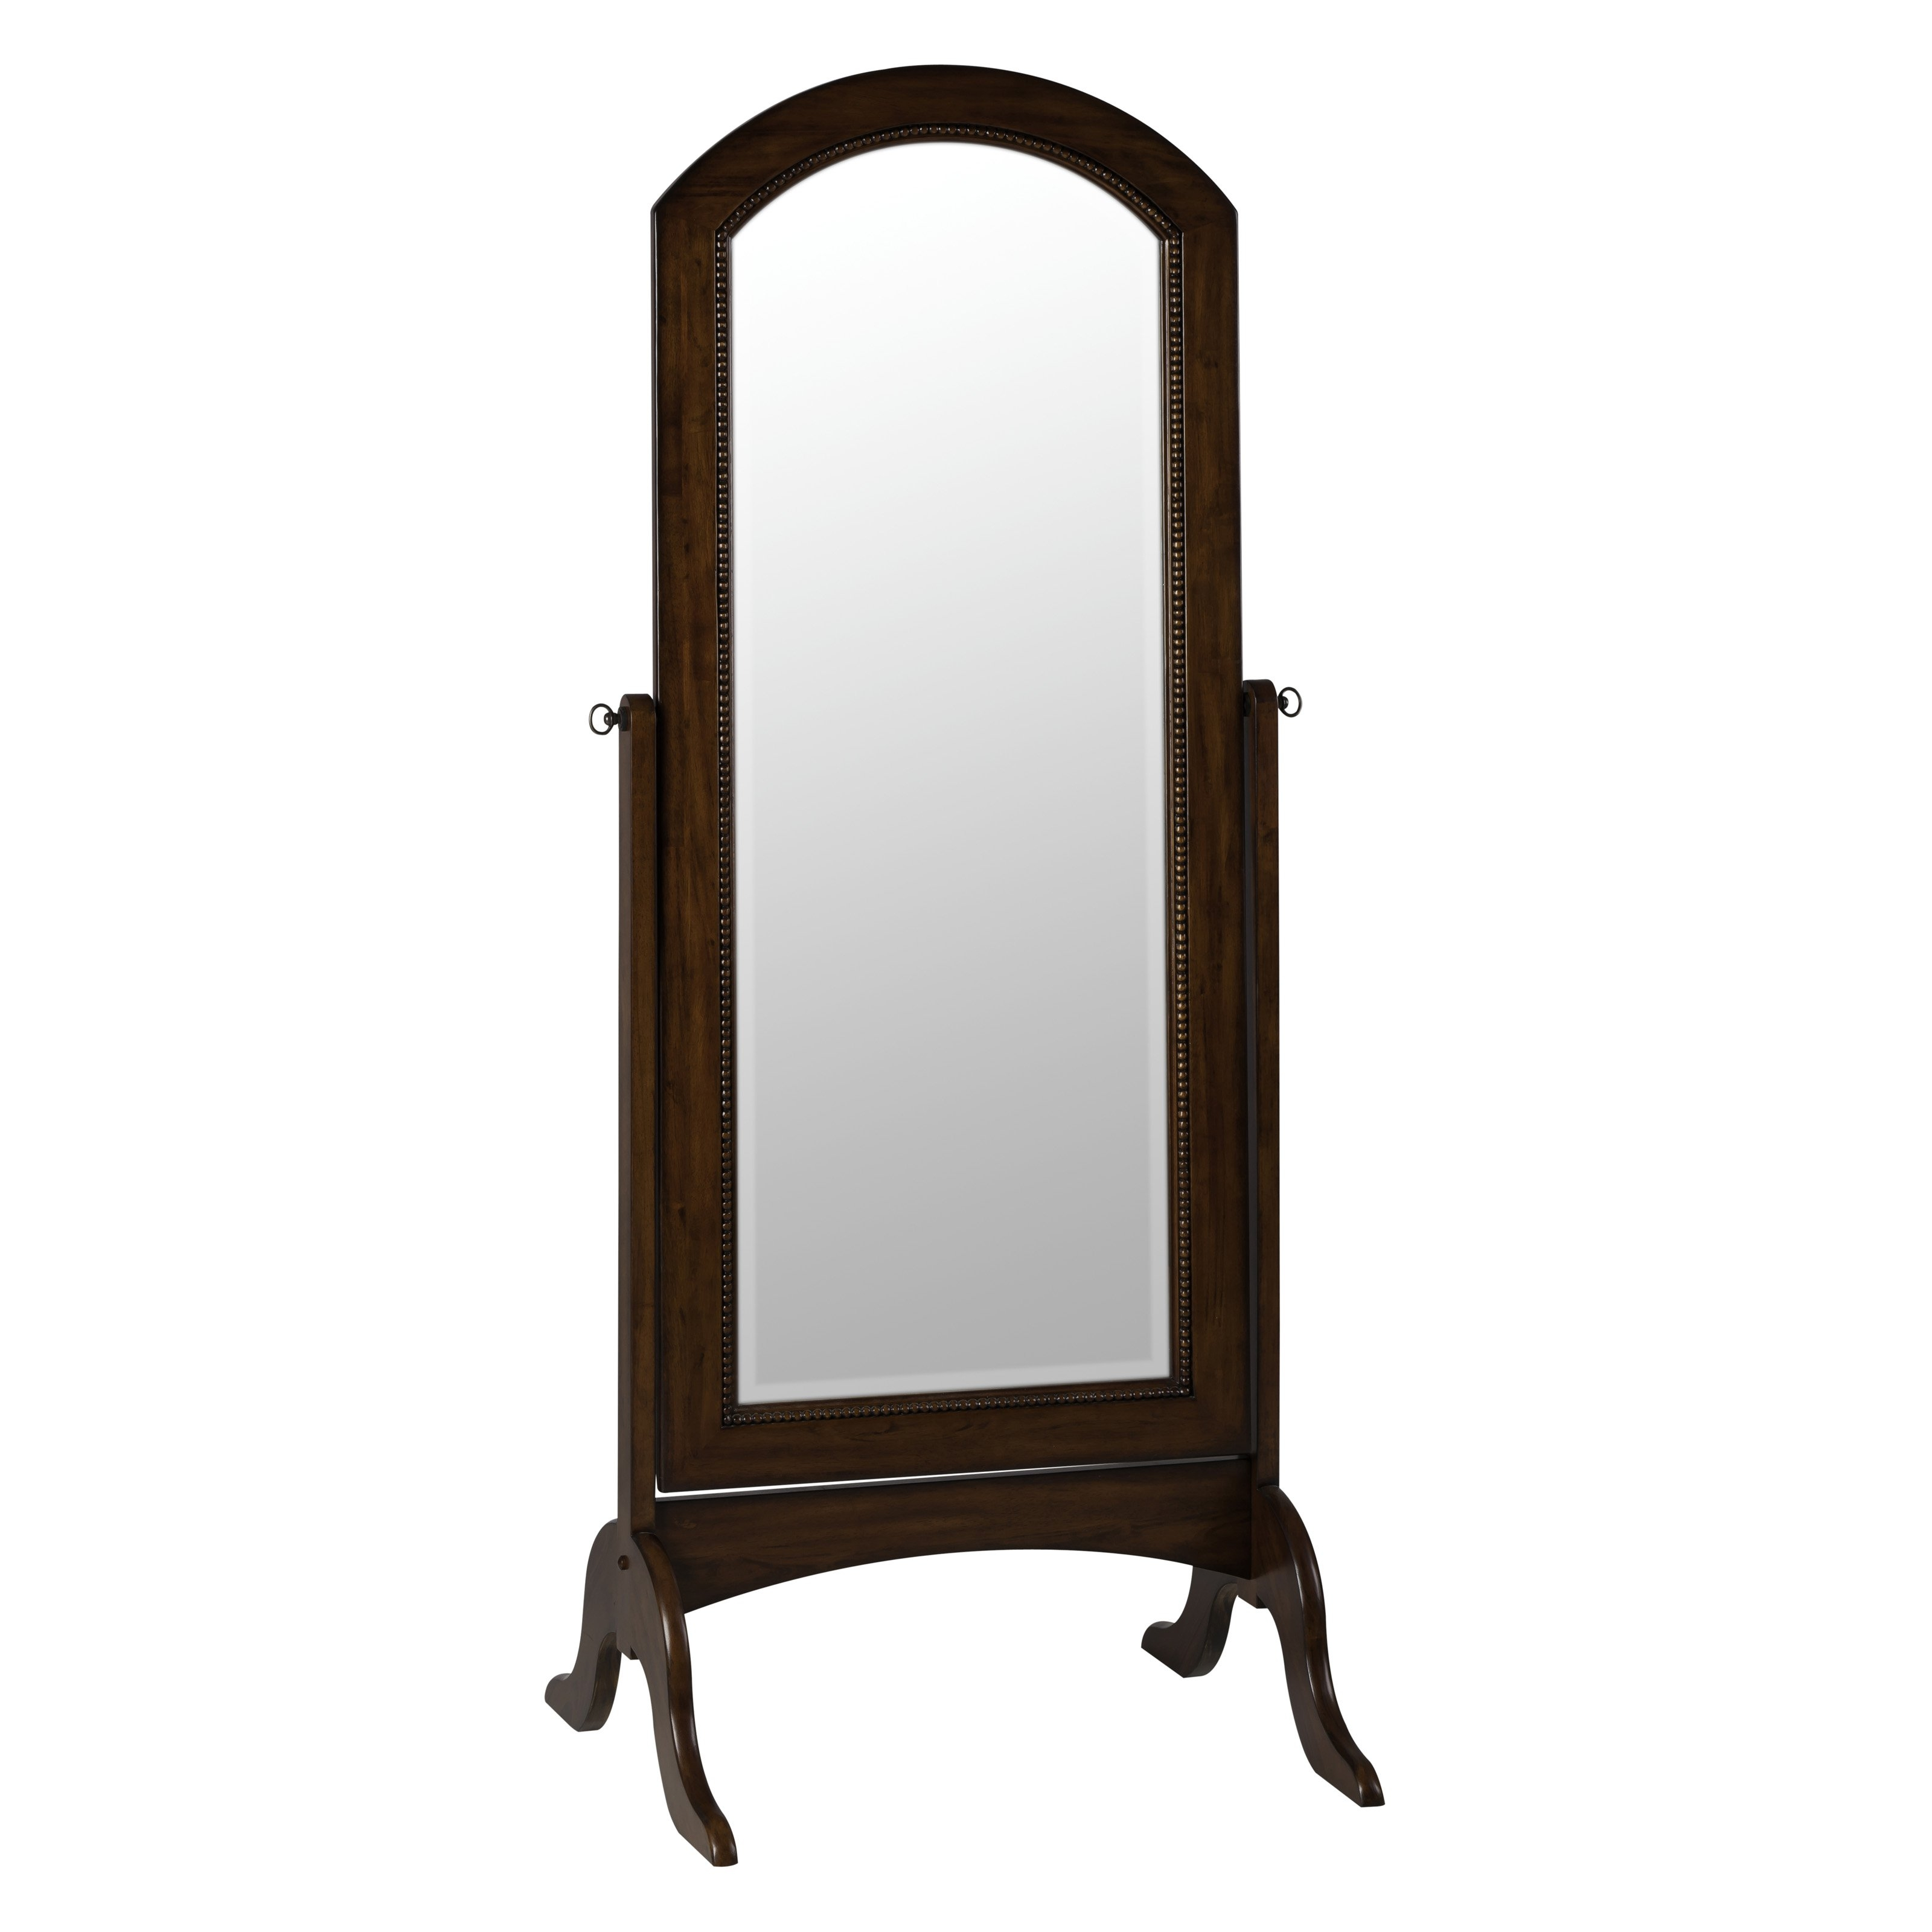 Floor Cheval Mirrors Pertaining To Victorian Standing Mirror (Image 6 of 15)